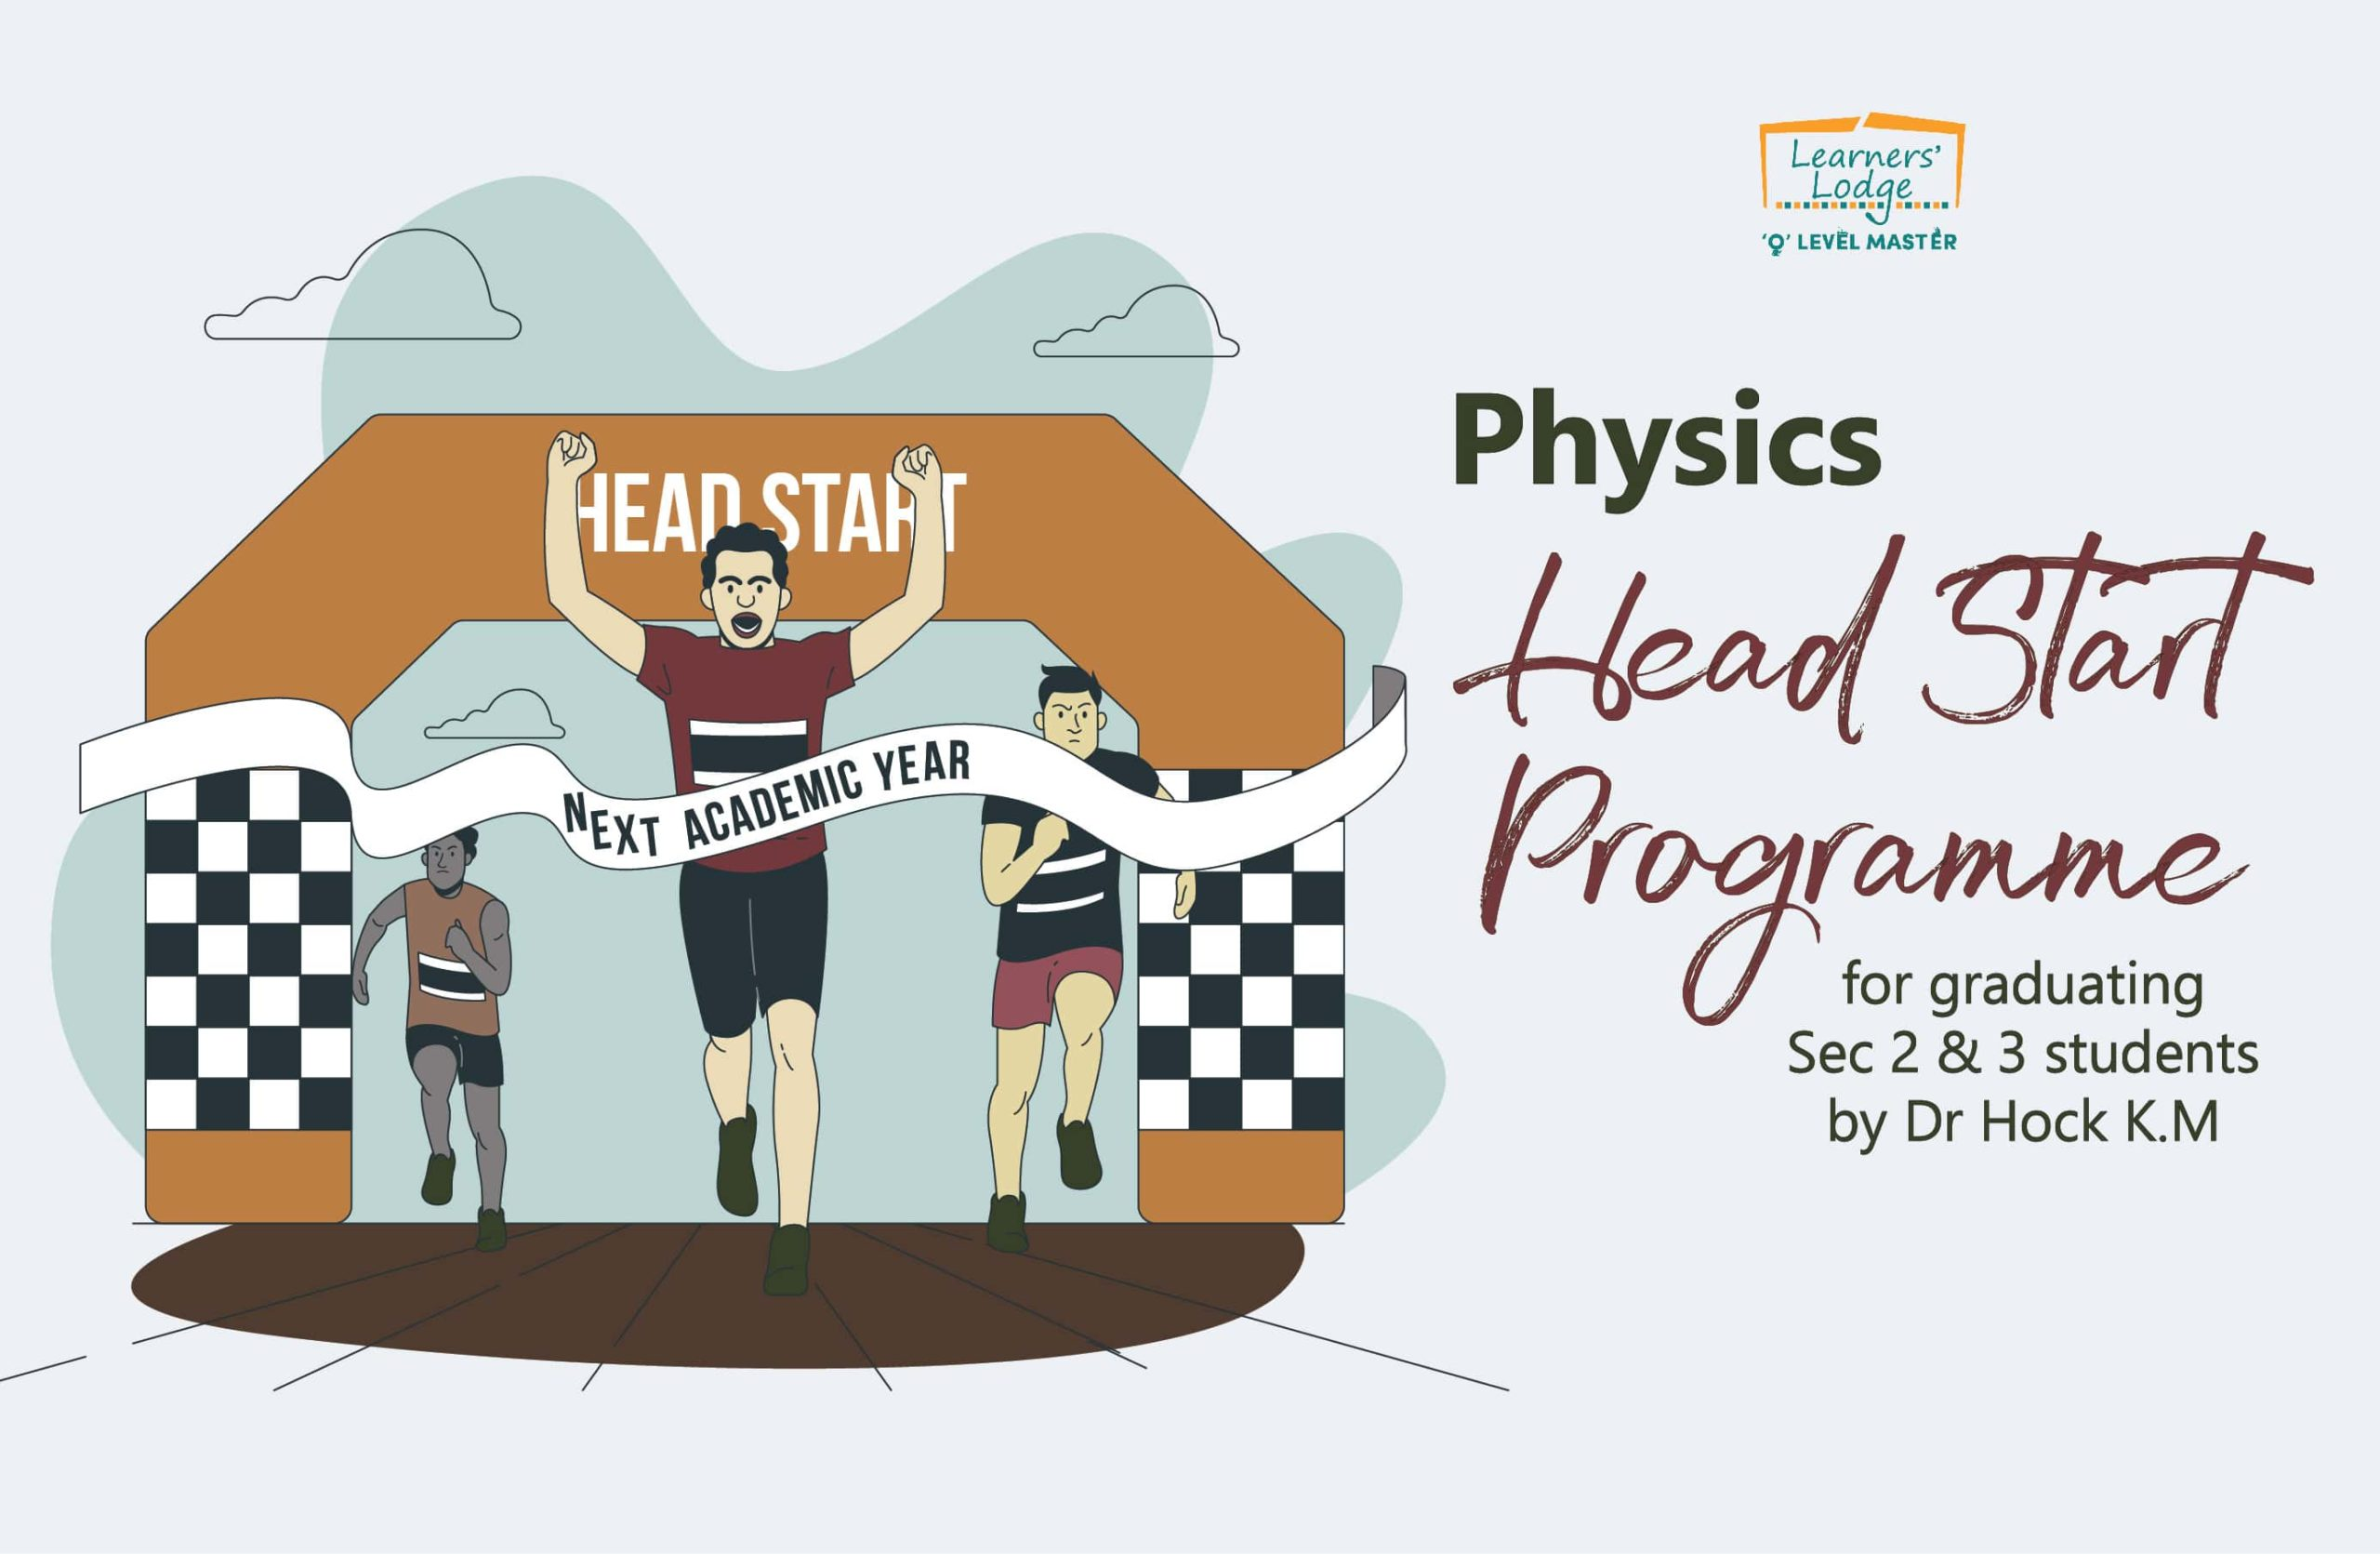 Physics Head Start Programme